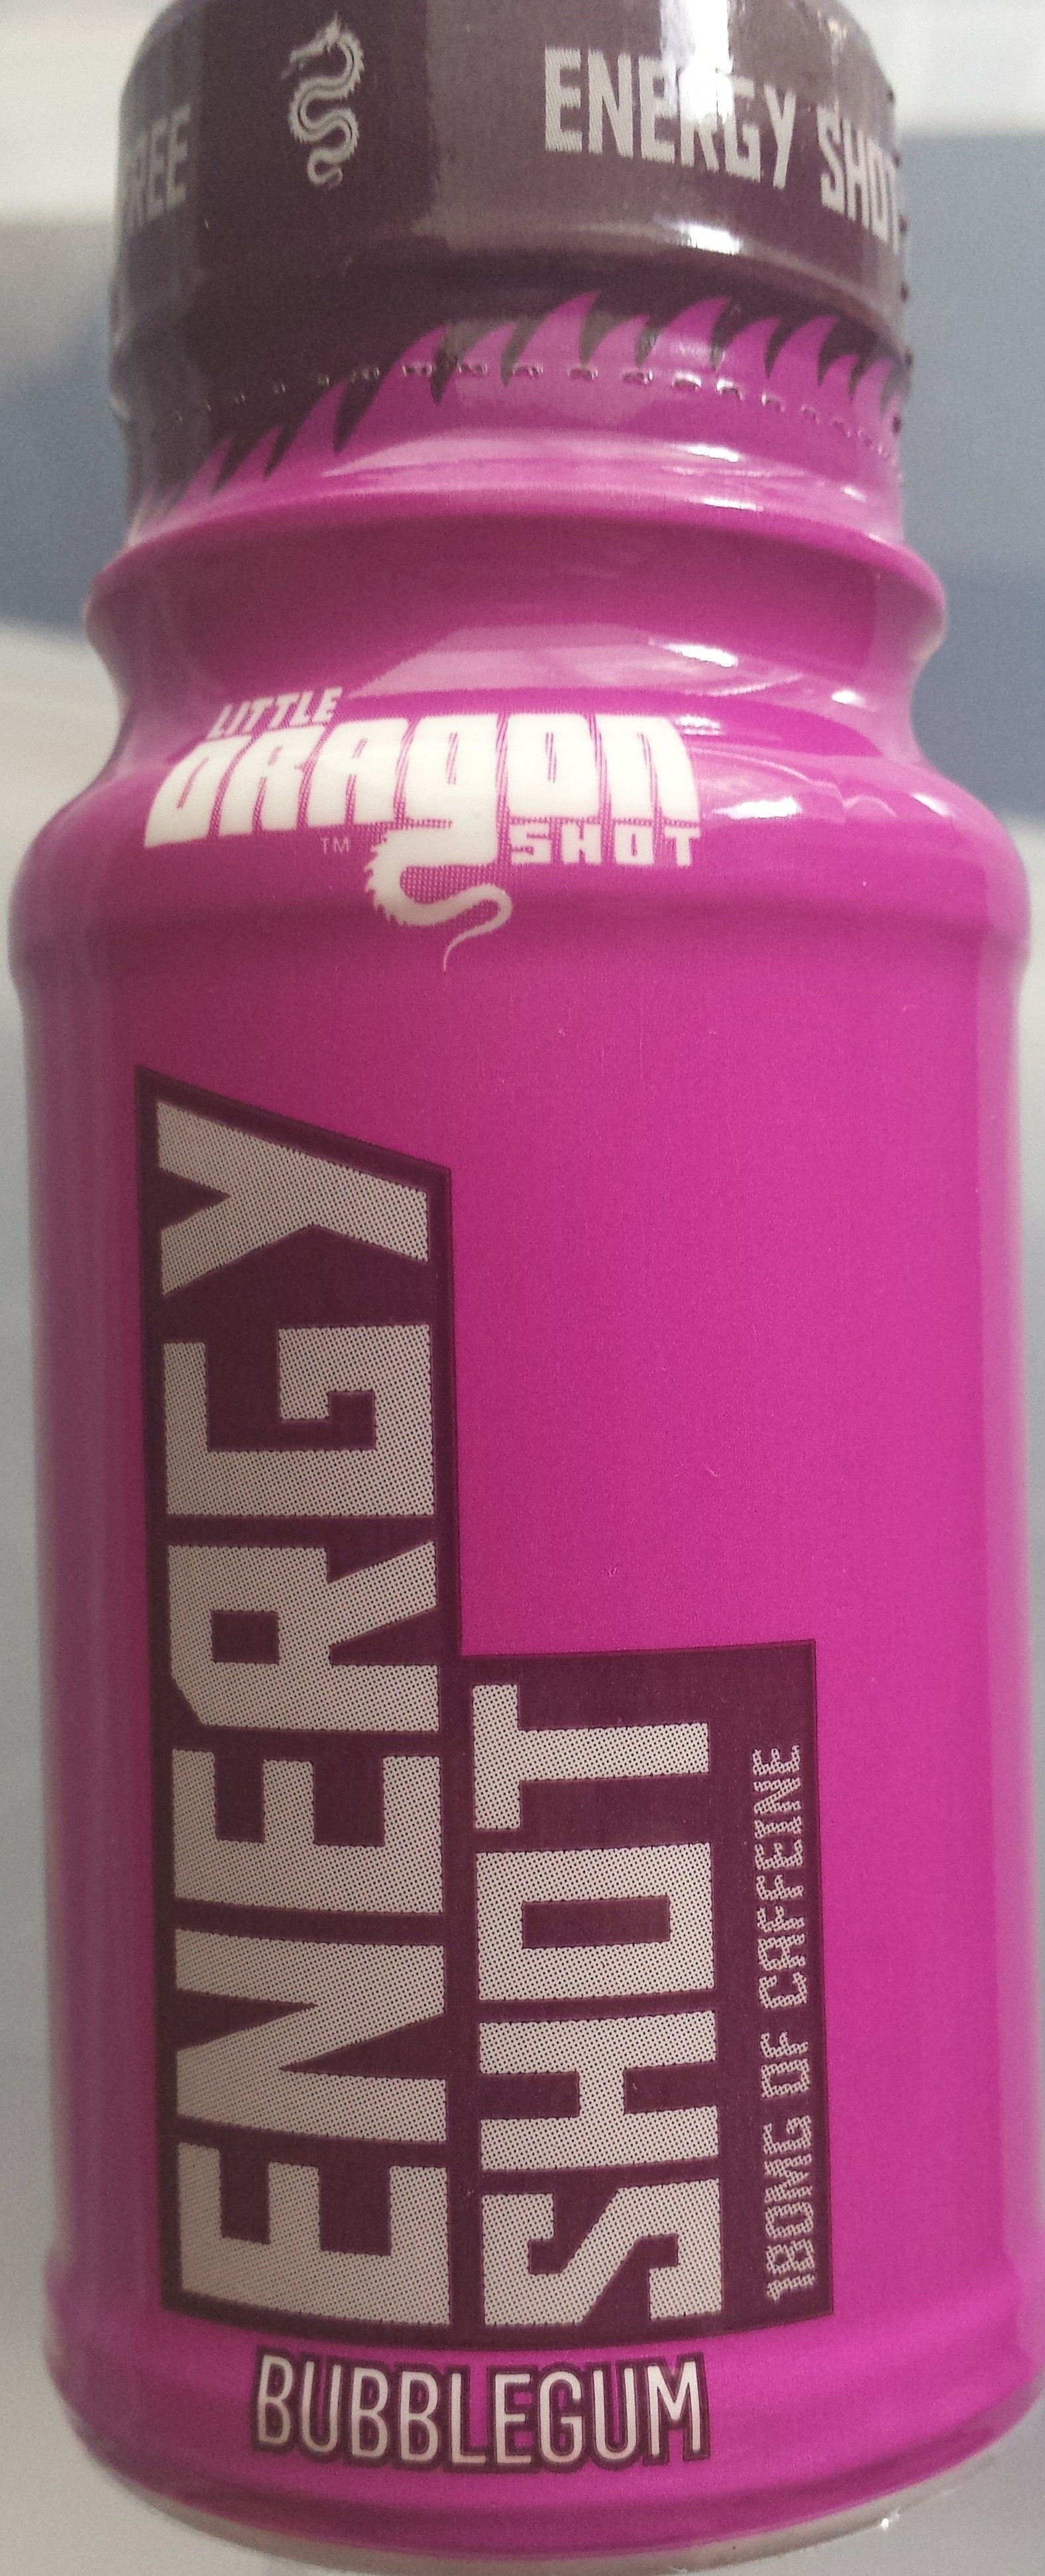 Energy Shot - Bubblegum - Produit